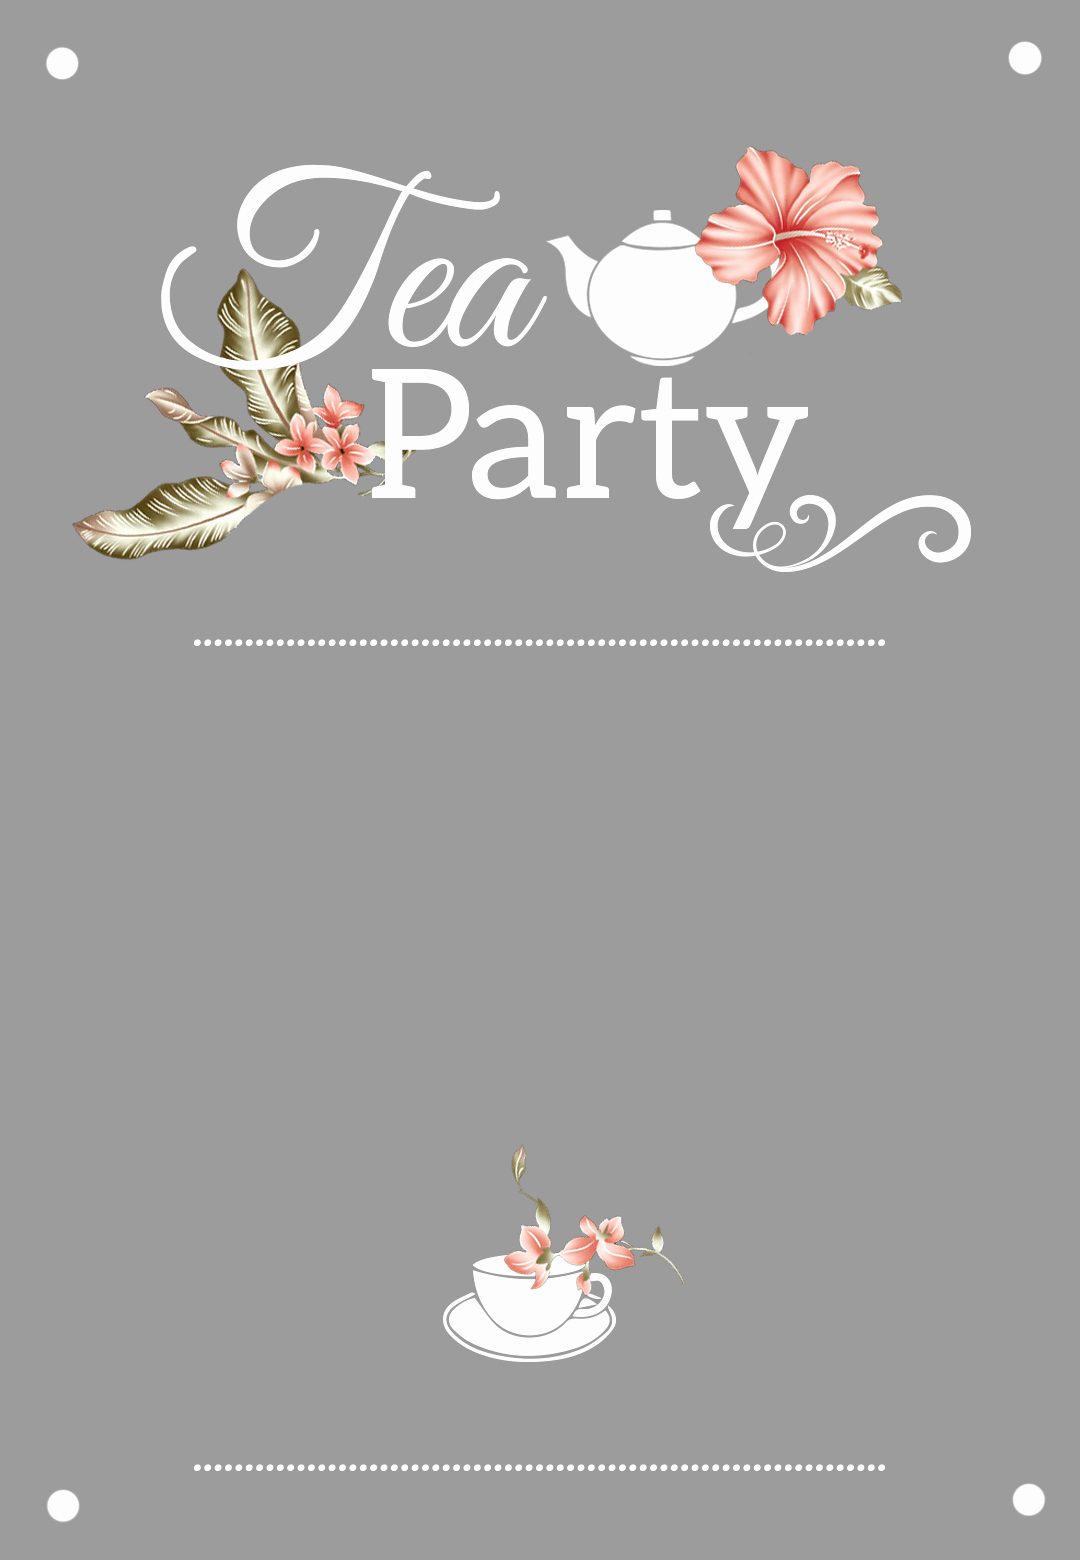 Tea Party Invitation Template Lovely Bridal Shower Tea Party Free Printable Bridal Shower Invitation Template